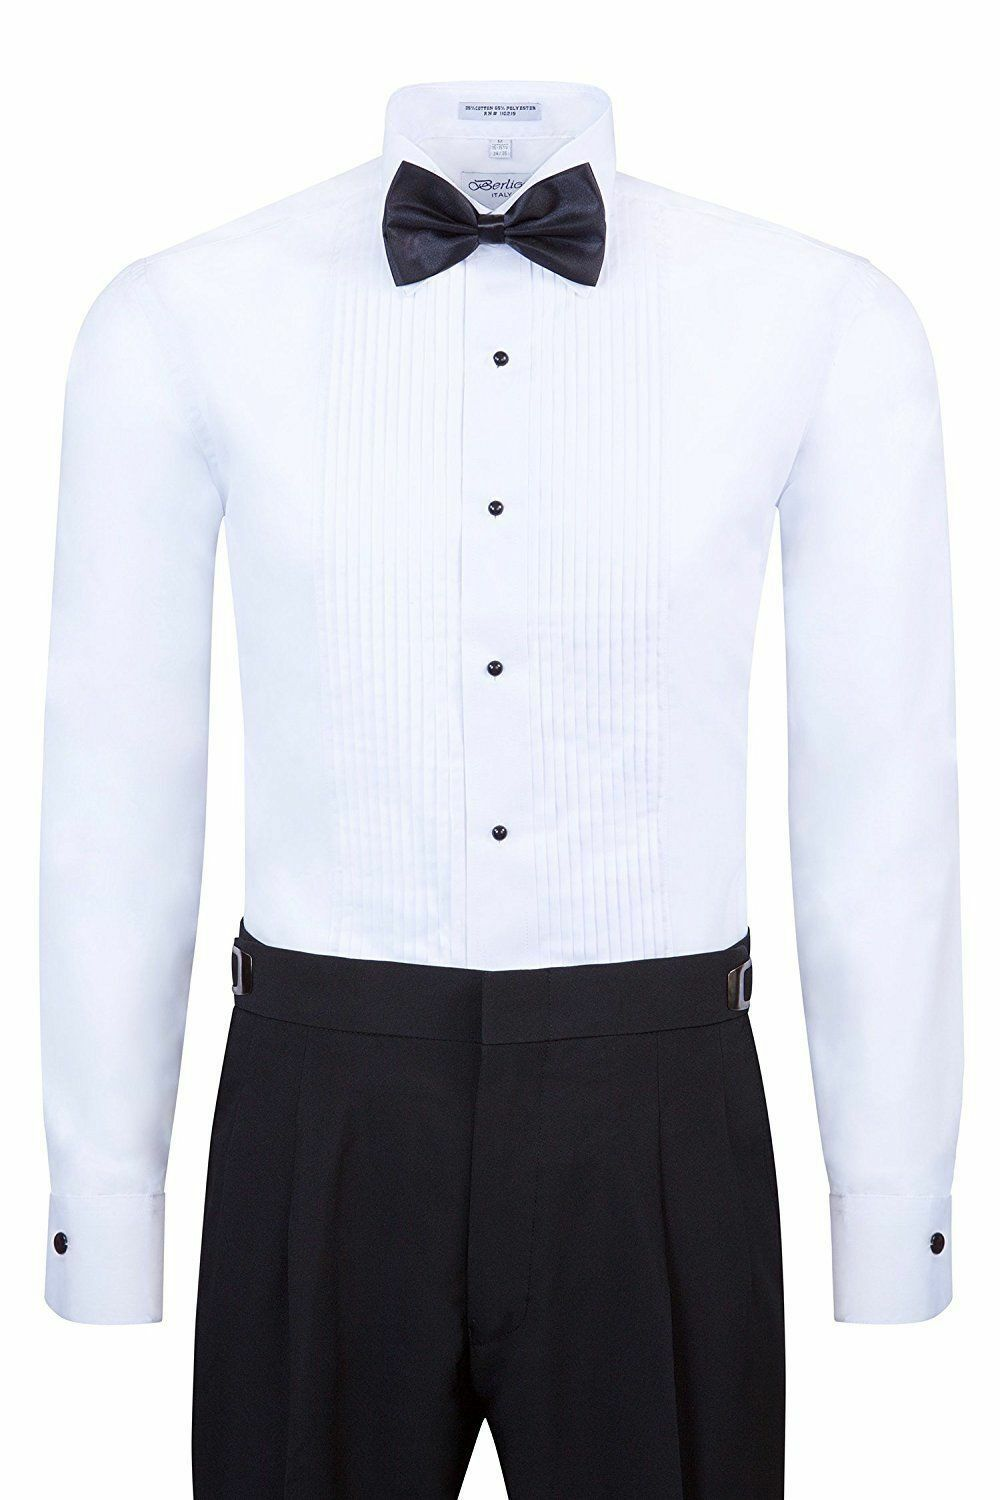 Berlioni Men/'s White Formal Tux Tuxedo Dress Shirt Bow Tie Included 2 Collars